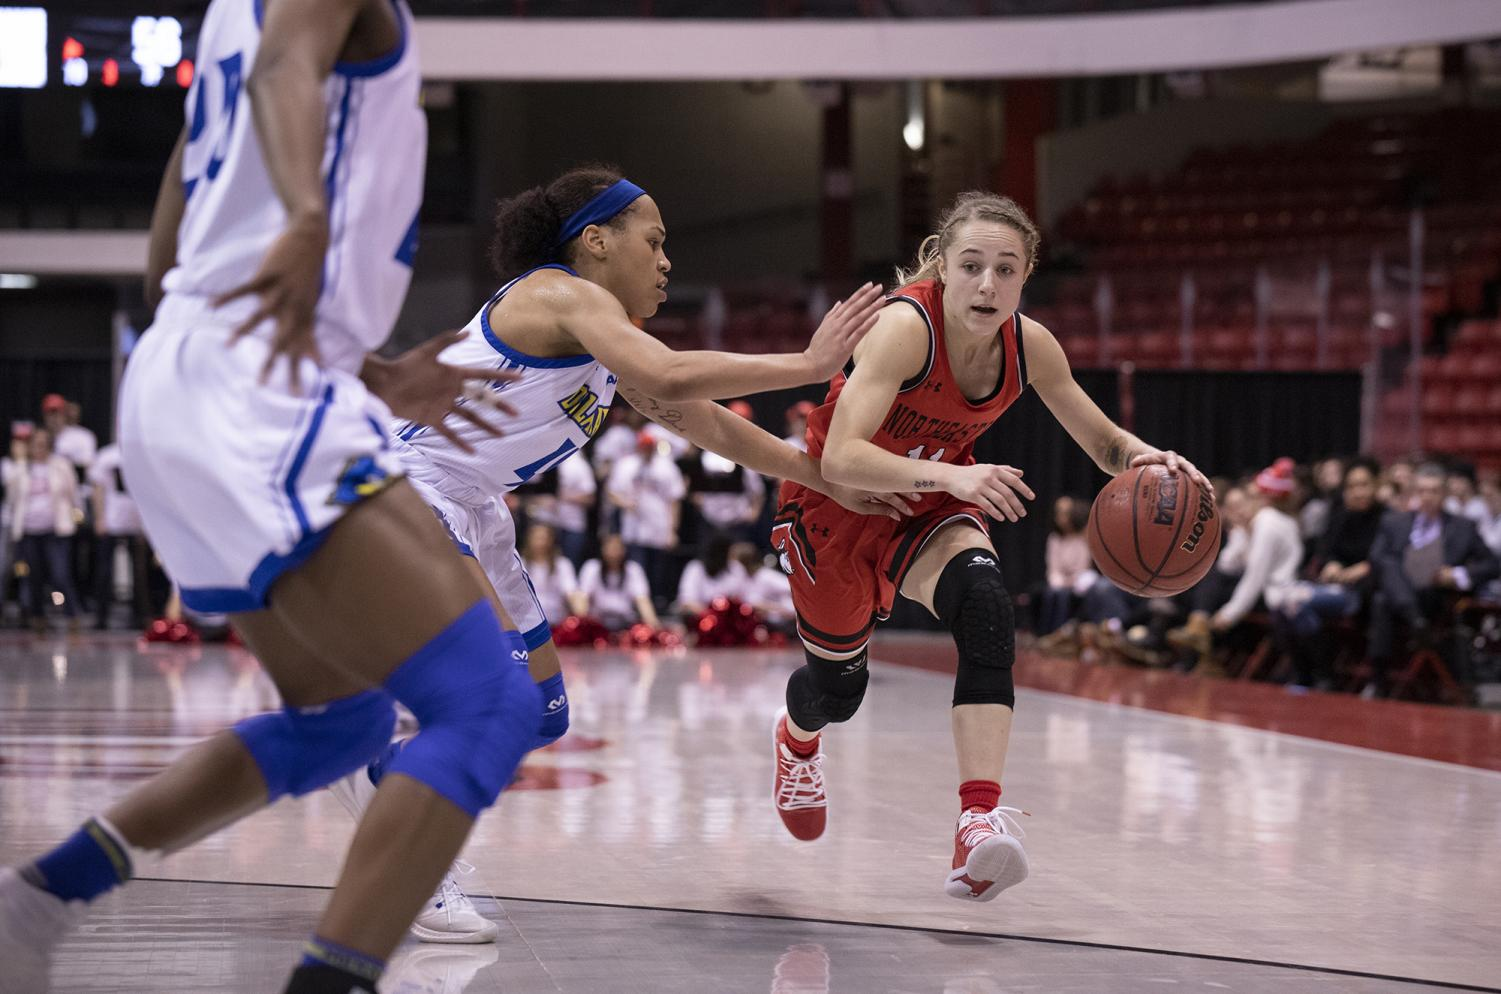 Sophomore guard Stella Clark fends off a University of Delaware defender Saturday, January 20 in Matthews Arena.